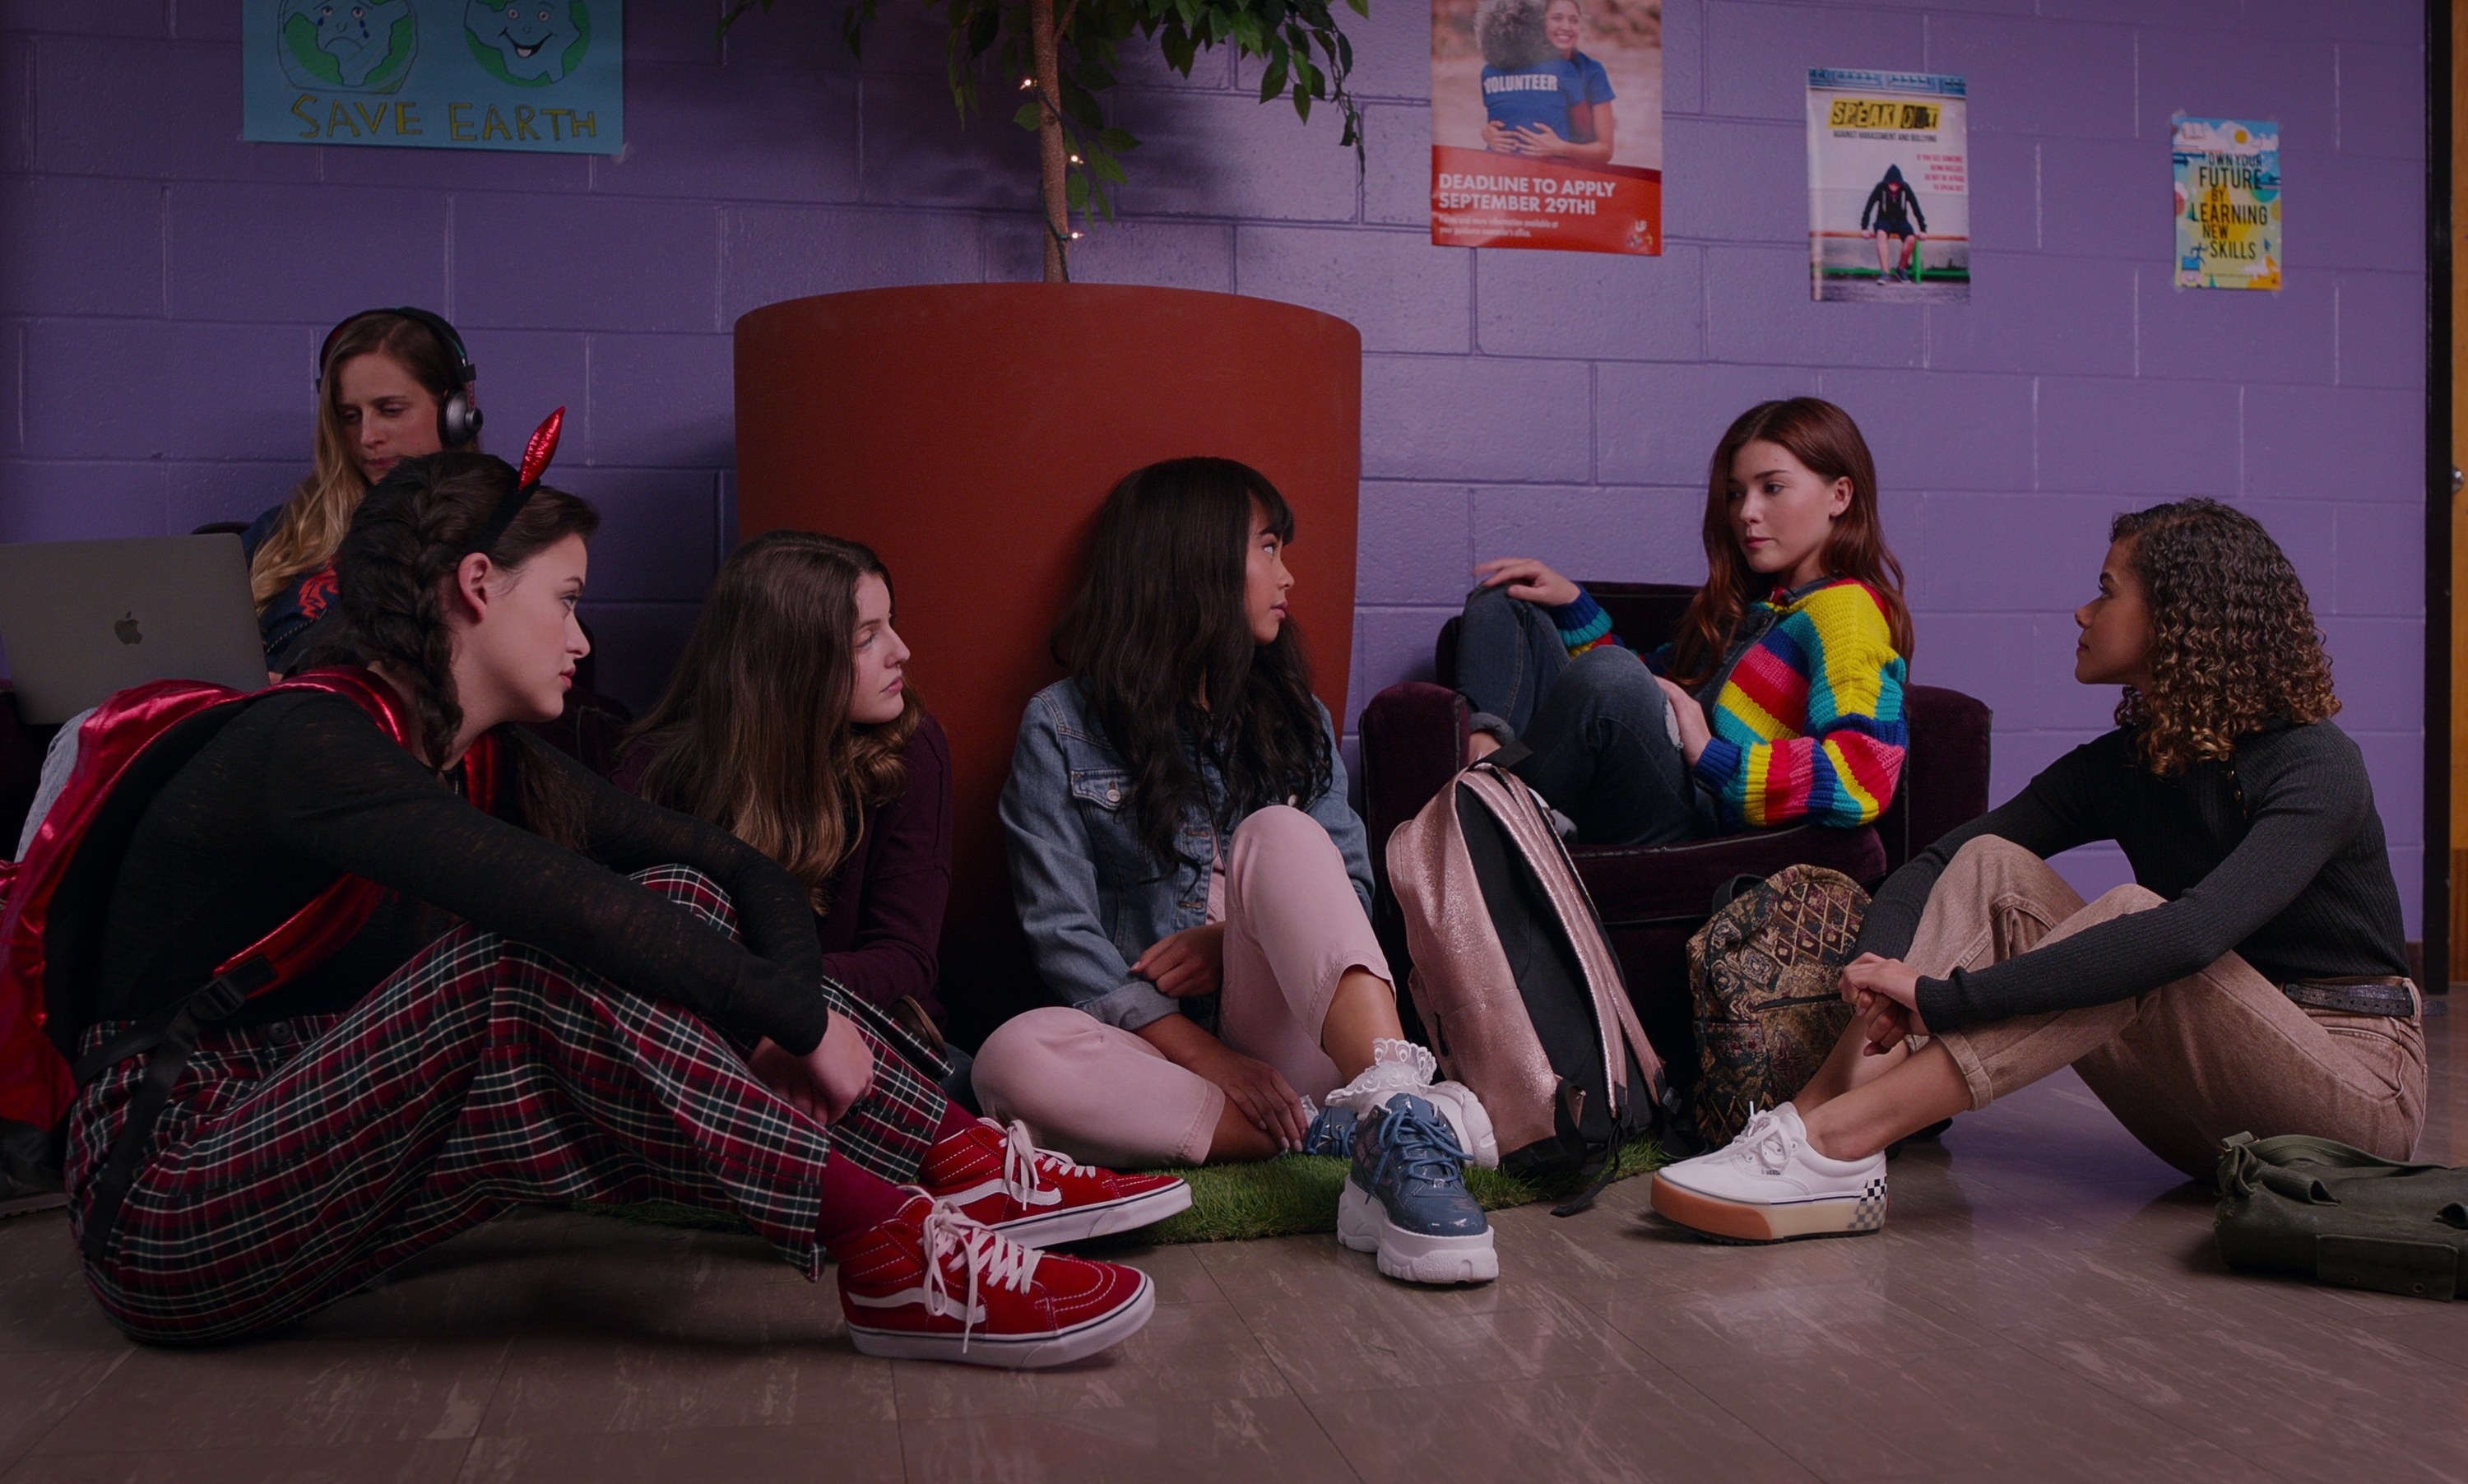 Max, Samantha, Norah, Abby, and Ginny sit on the floor